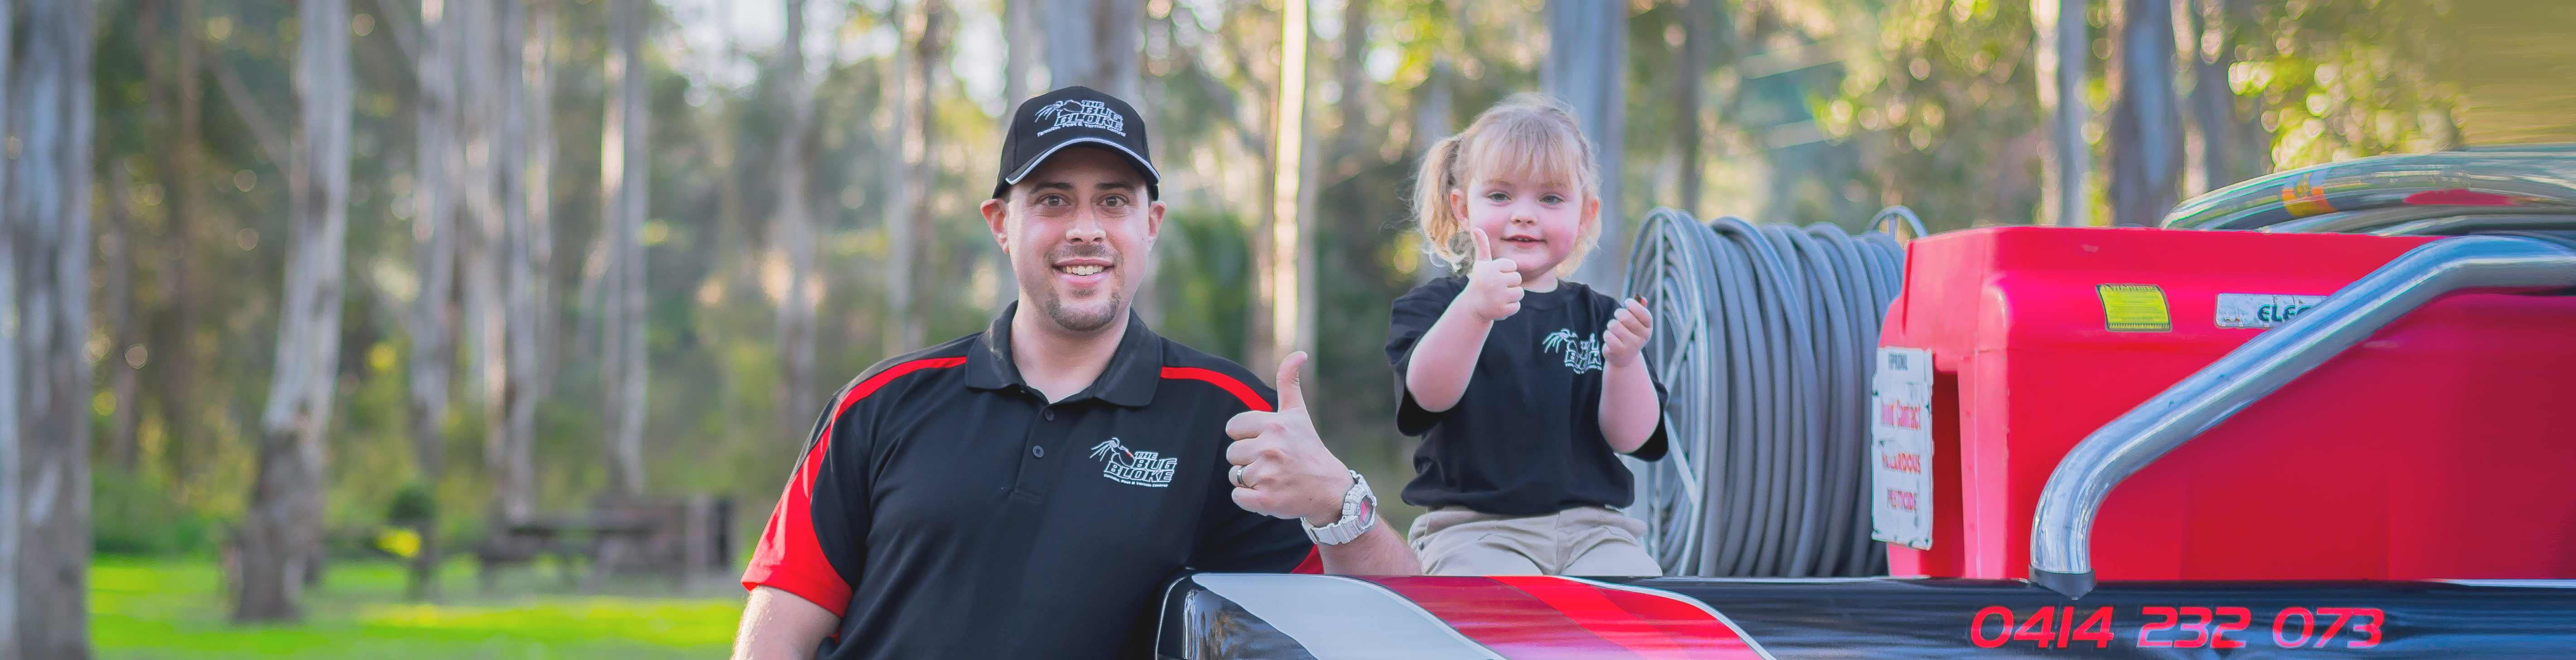 the bug bloke residential and commercial pest control sydney - about us